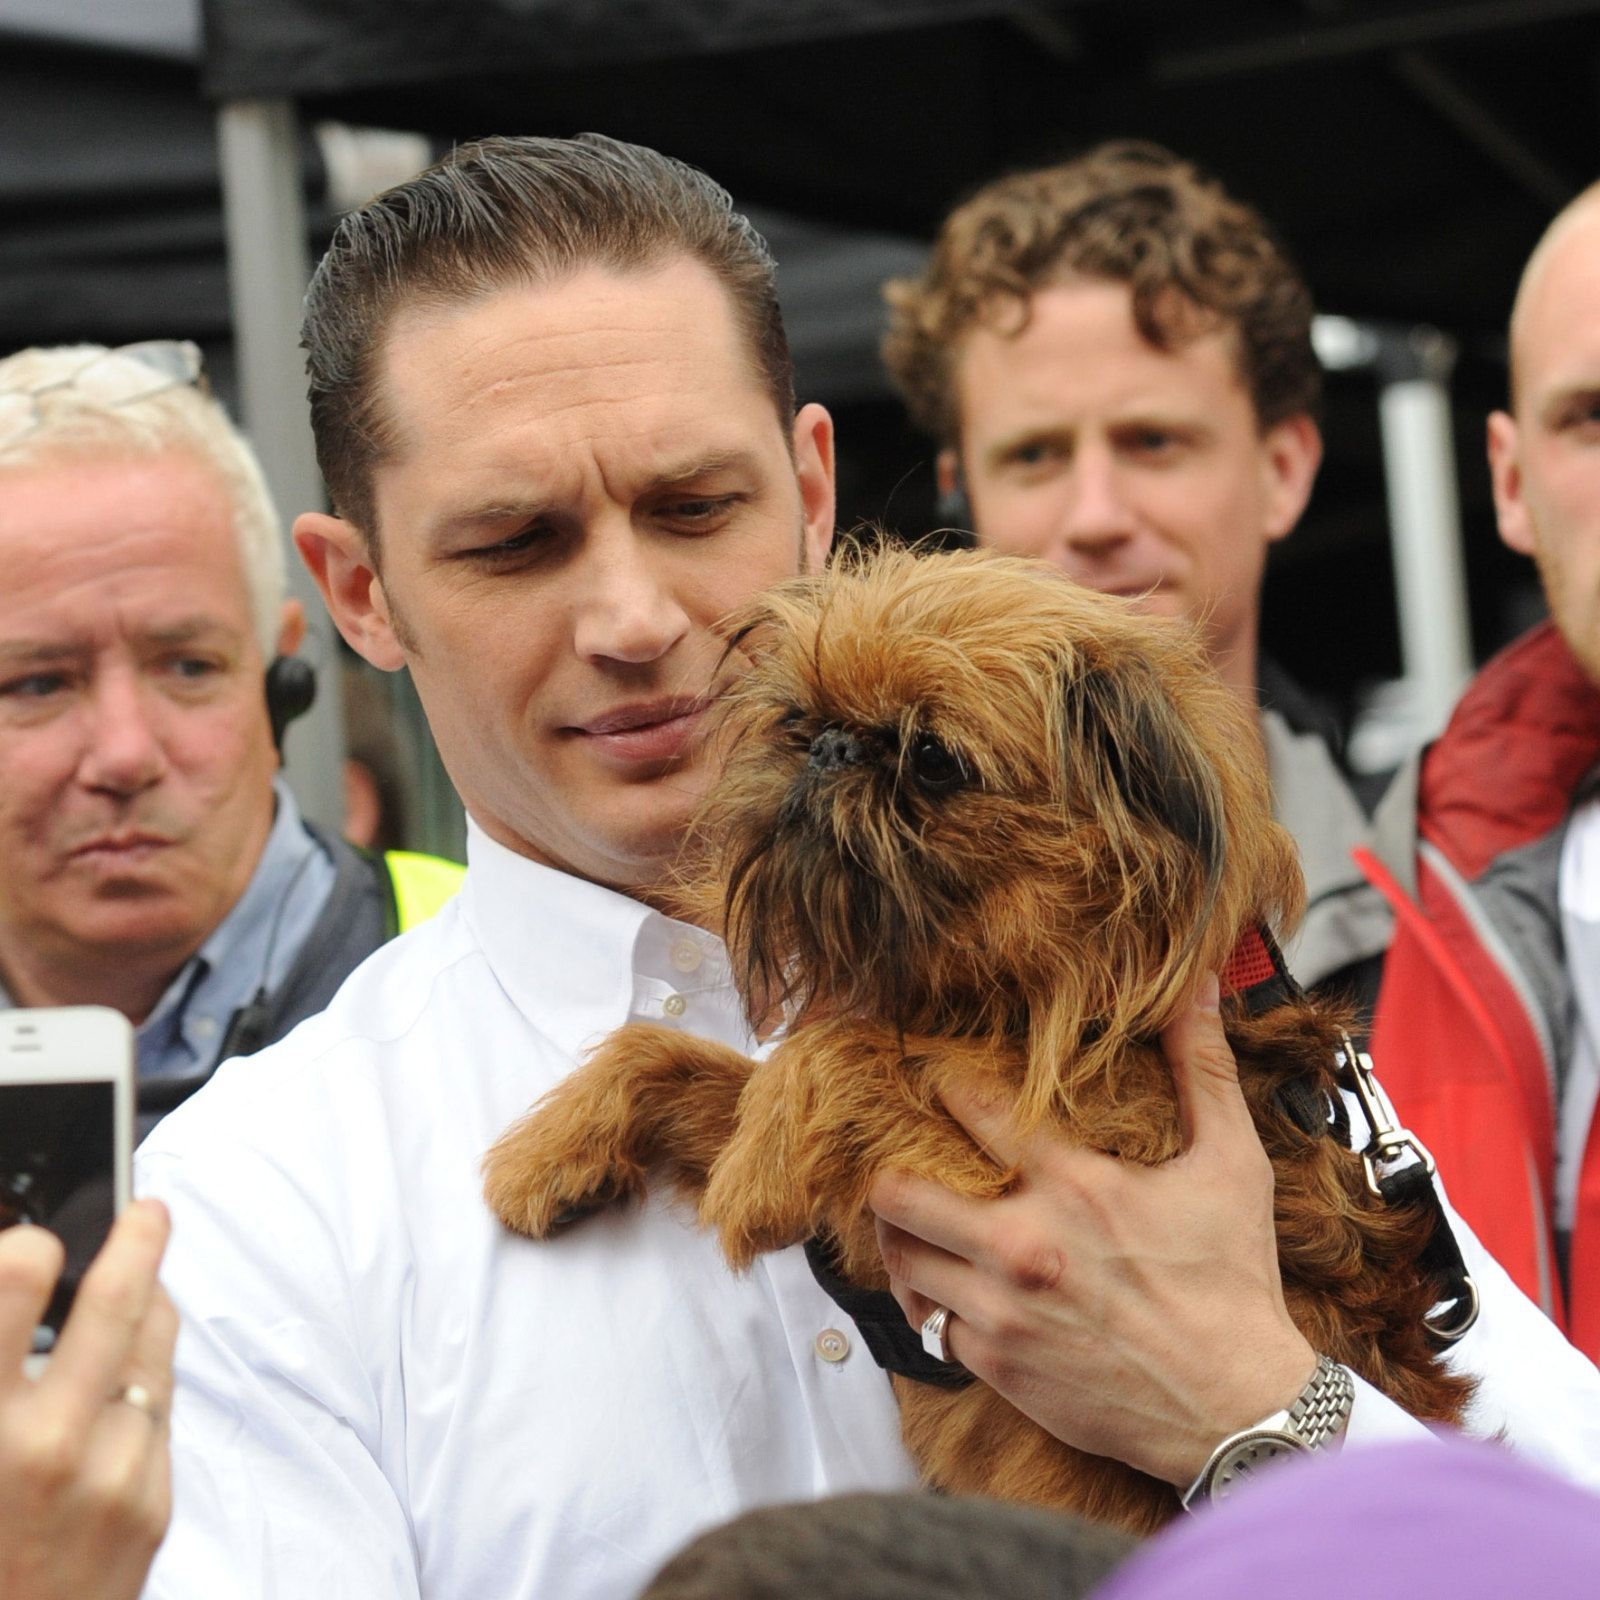 Tom Hardy puppy dog pictures gallery Cosmopolitan.co.uk